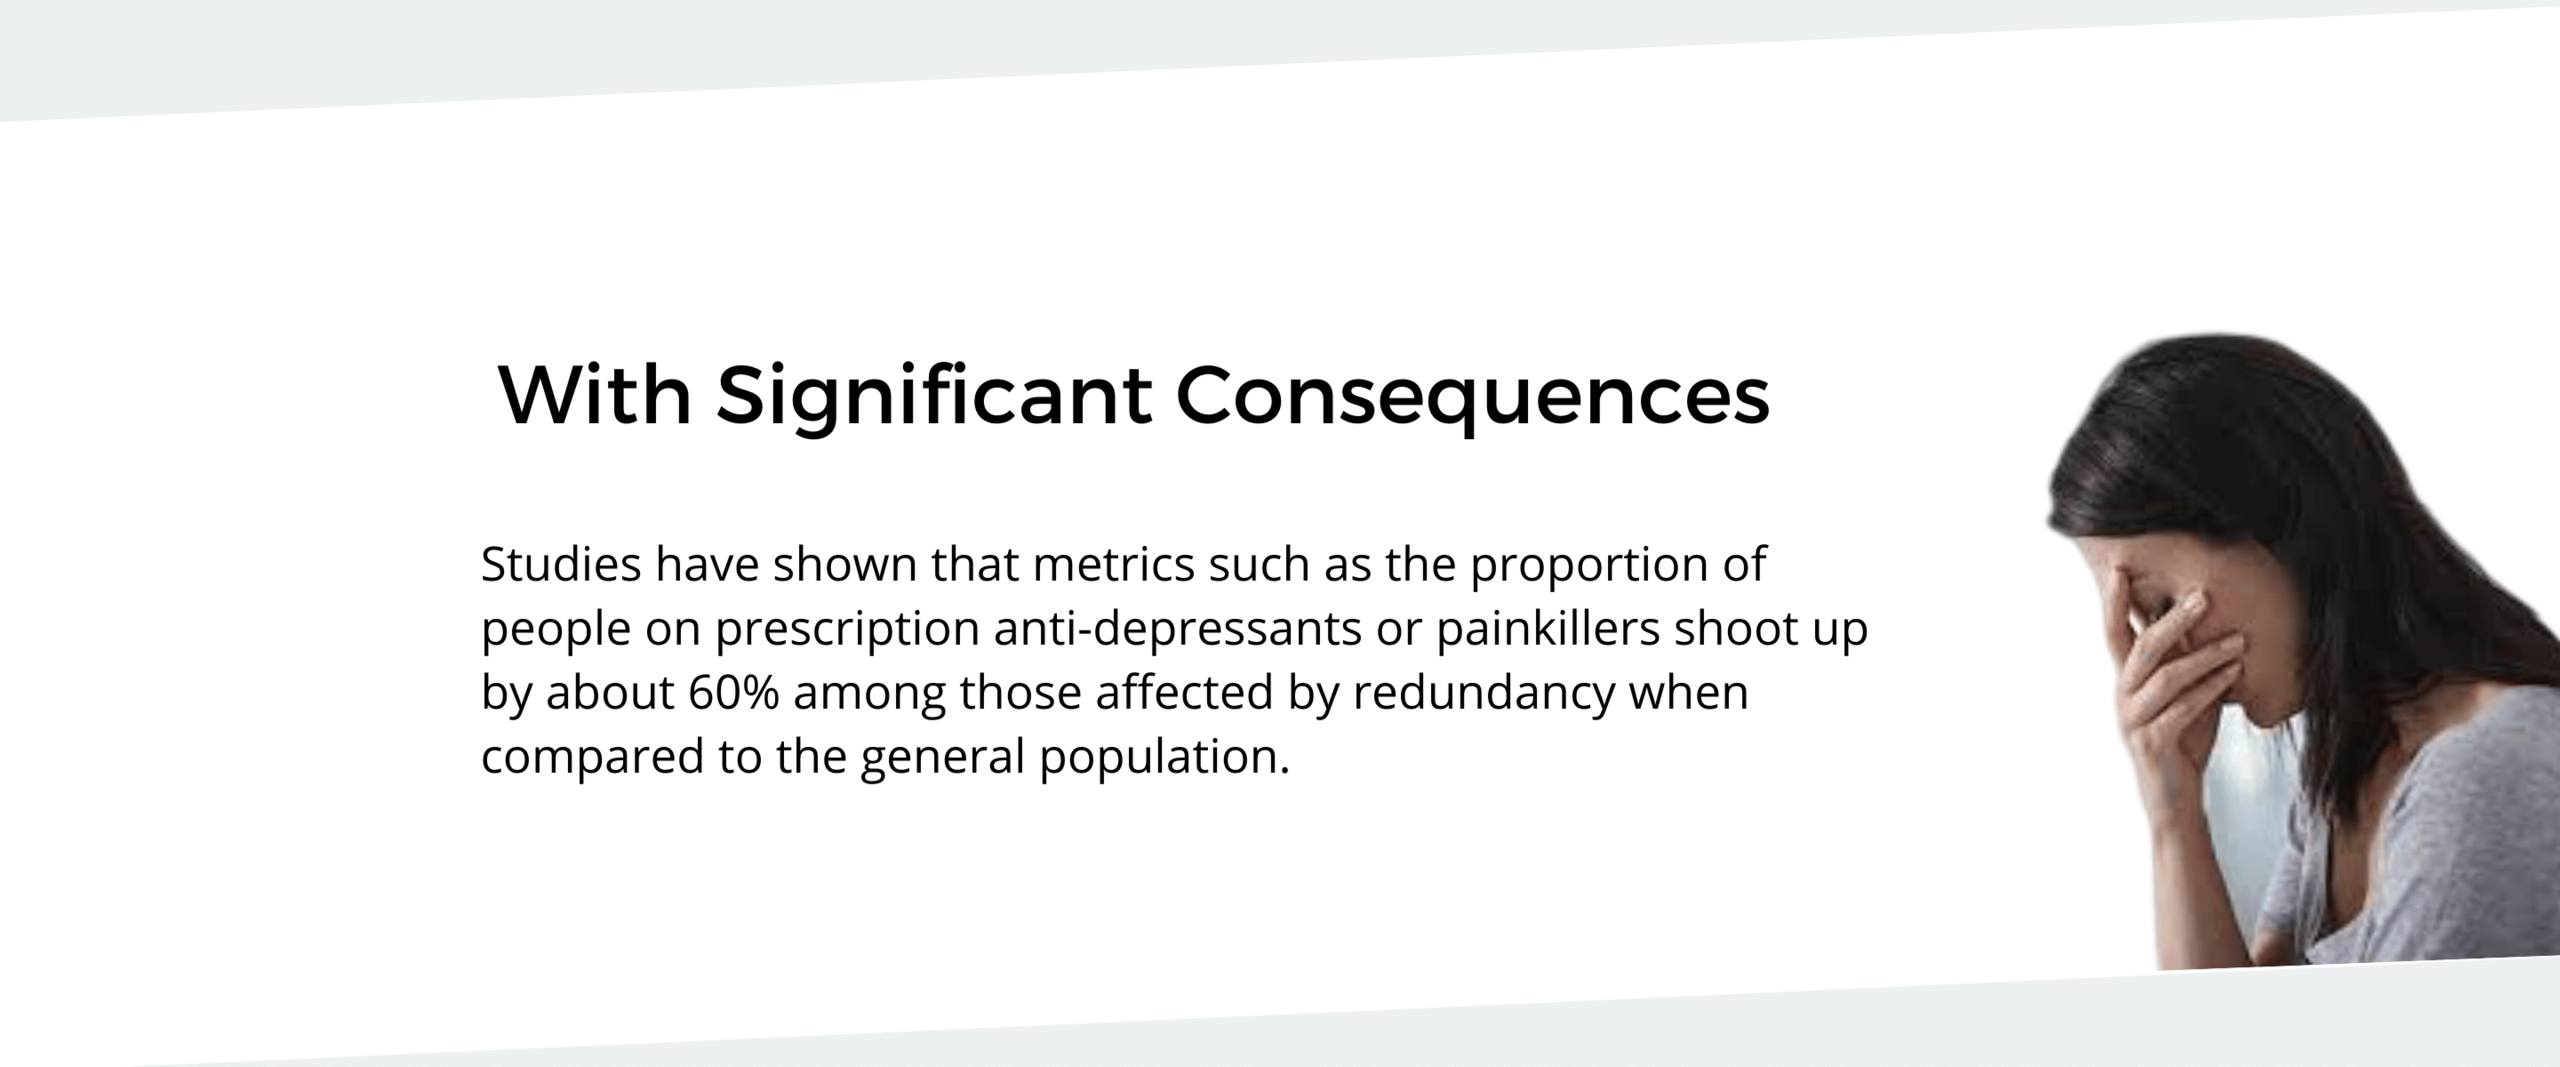 Significant effects of redundancy